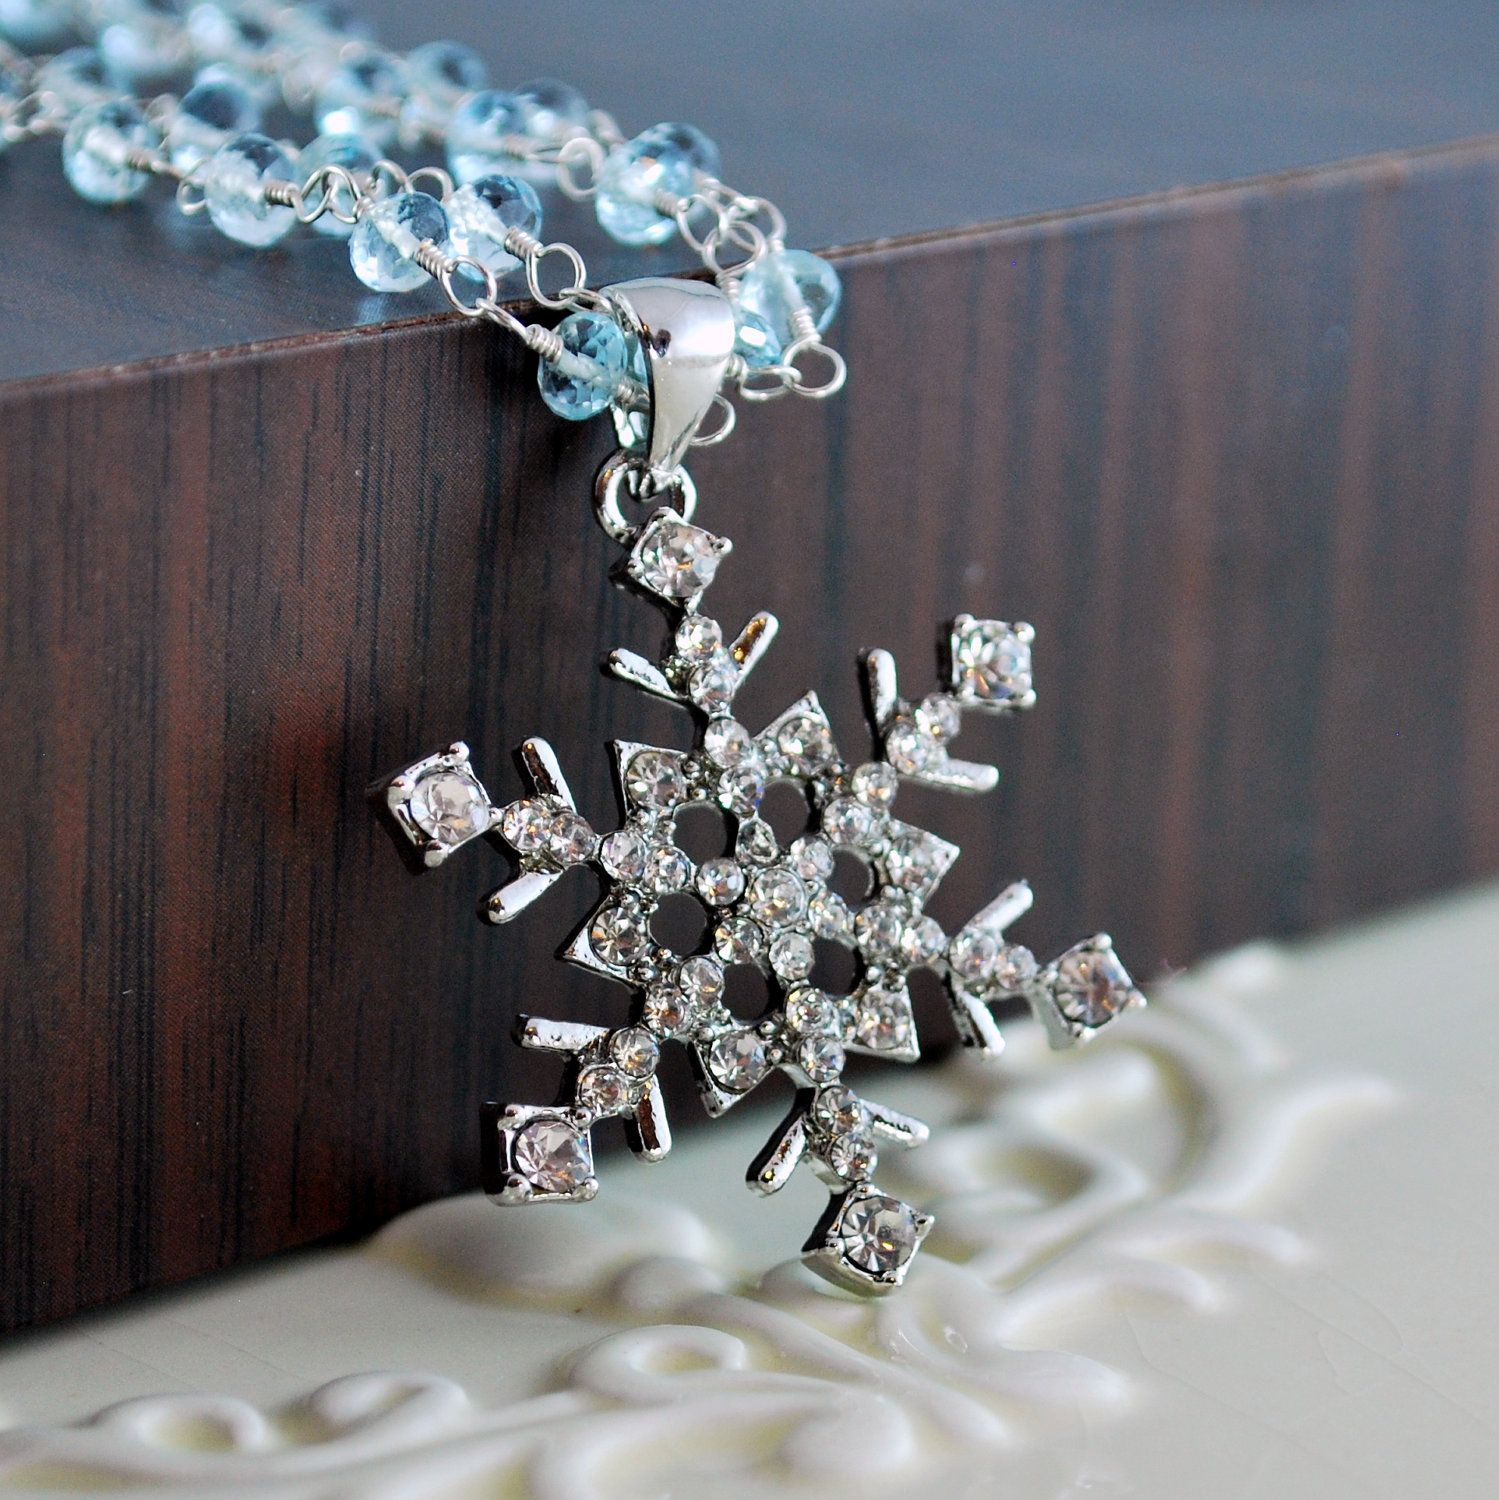 Snowflake Necklace Wedding Jewelry Genuine Blue Topaz Gemstone Aqua Freshwater Pearls Sterling Silver - Frosty - Complimentary Shipping. $115.00, via Etsy.